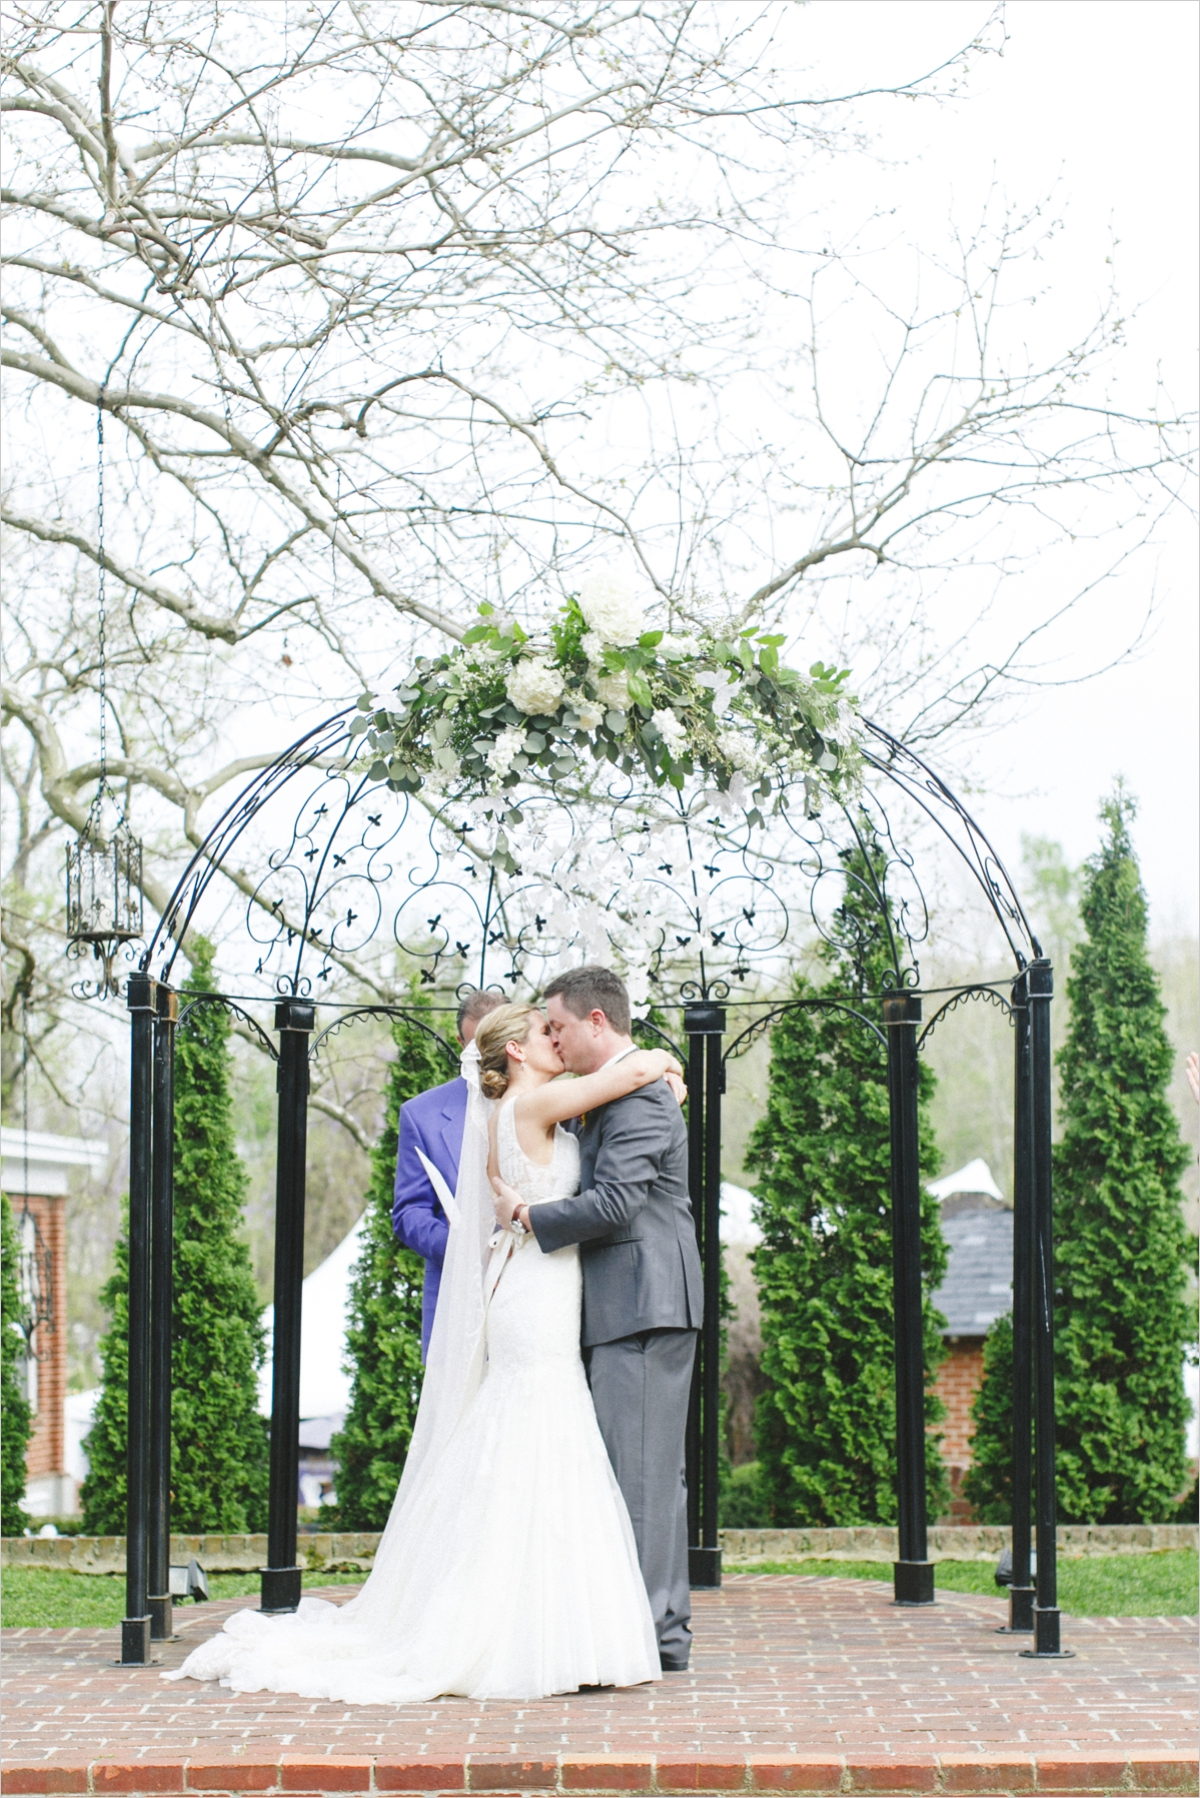 sarah-jordy-married-historic-mankin-mansion_0021